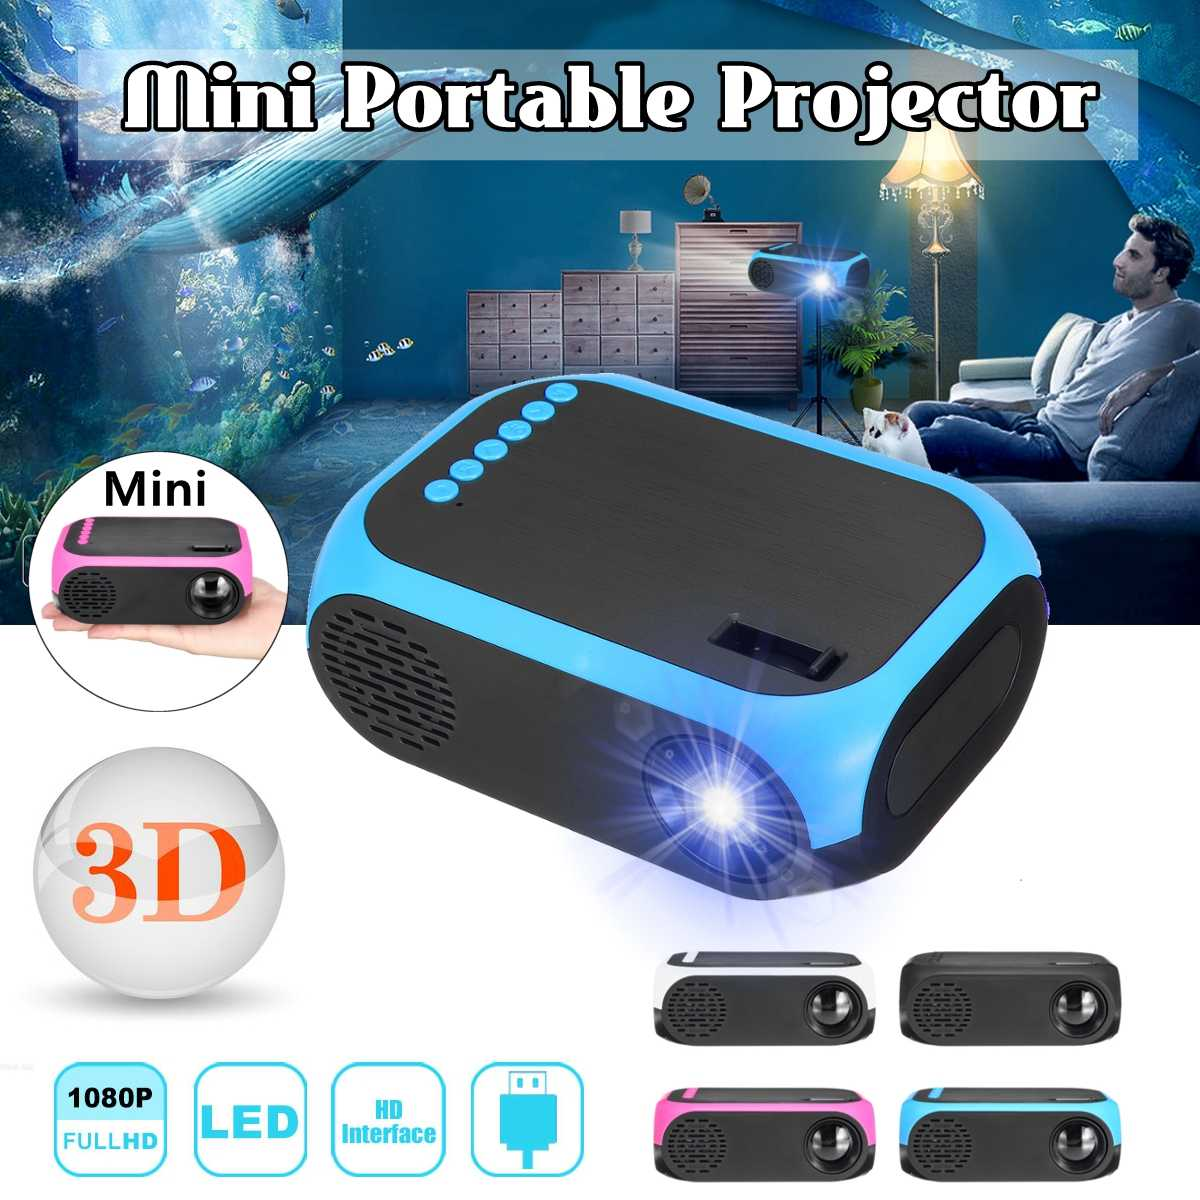 Mini Projector 1080p HD USB TF Support 3D MP4 Portable Cinema Projector Home Theatre System Movie Projector